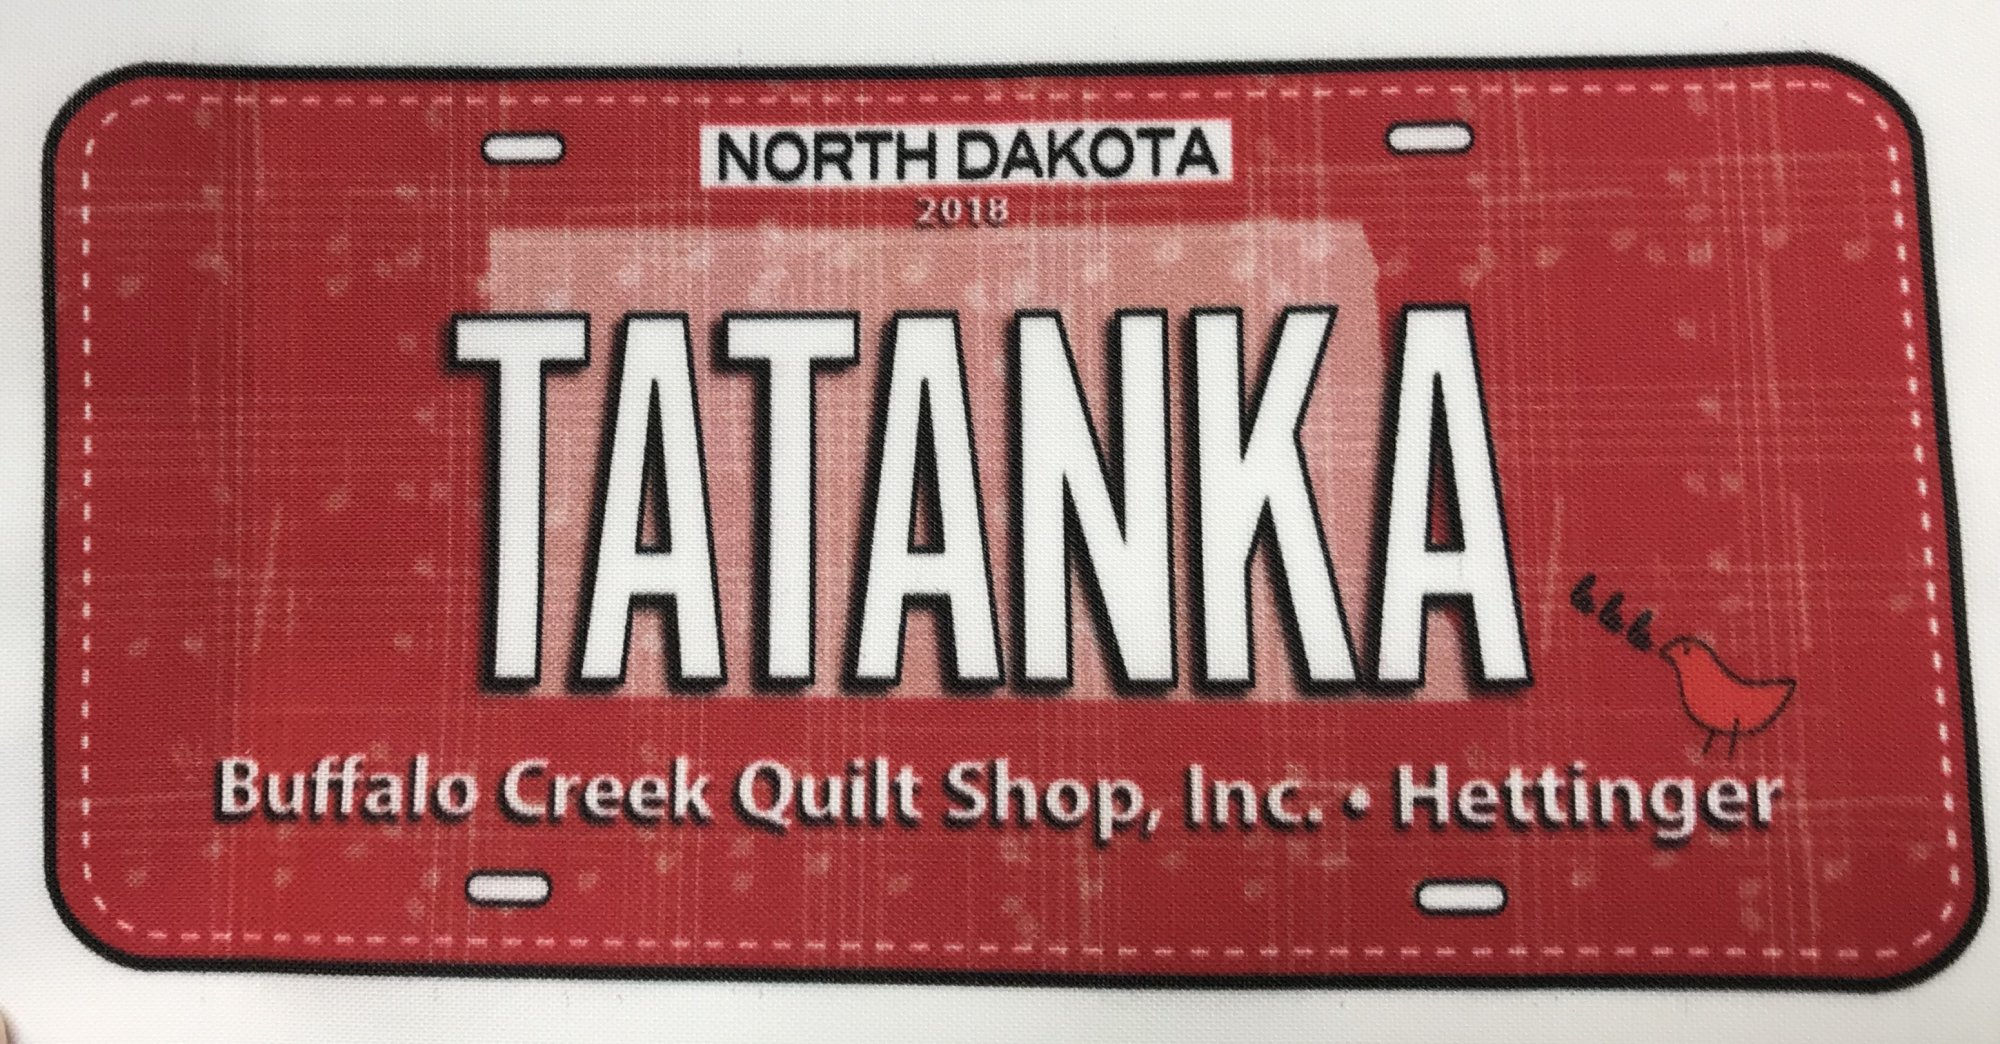 Row by Row Tatanka License Plate 2018